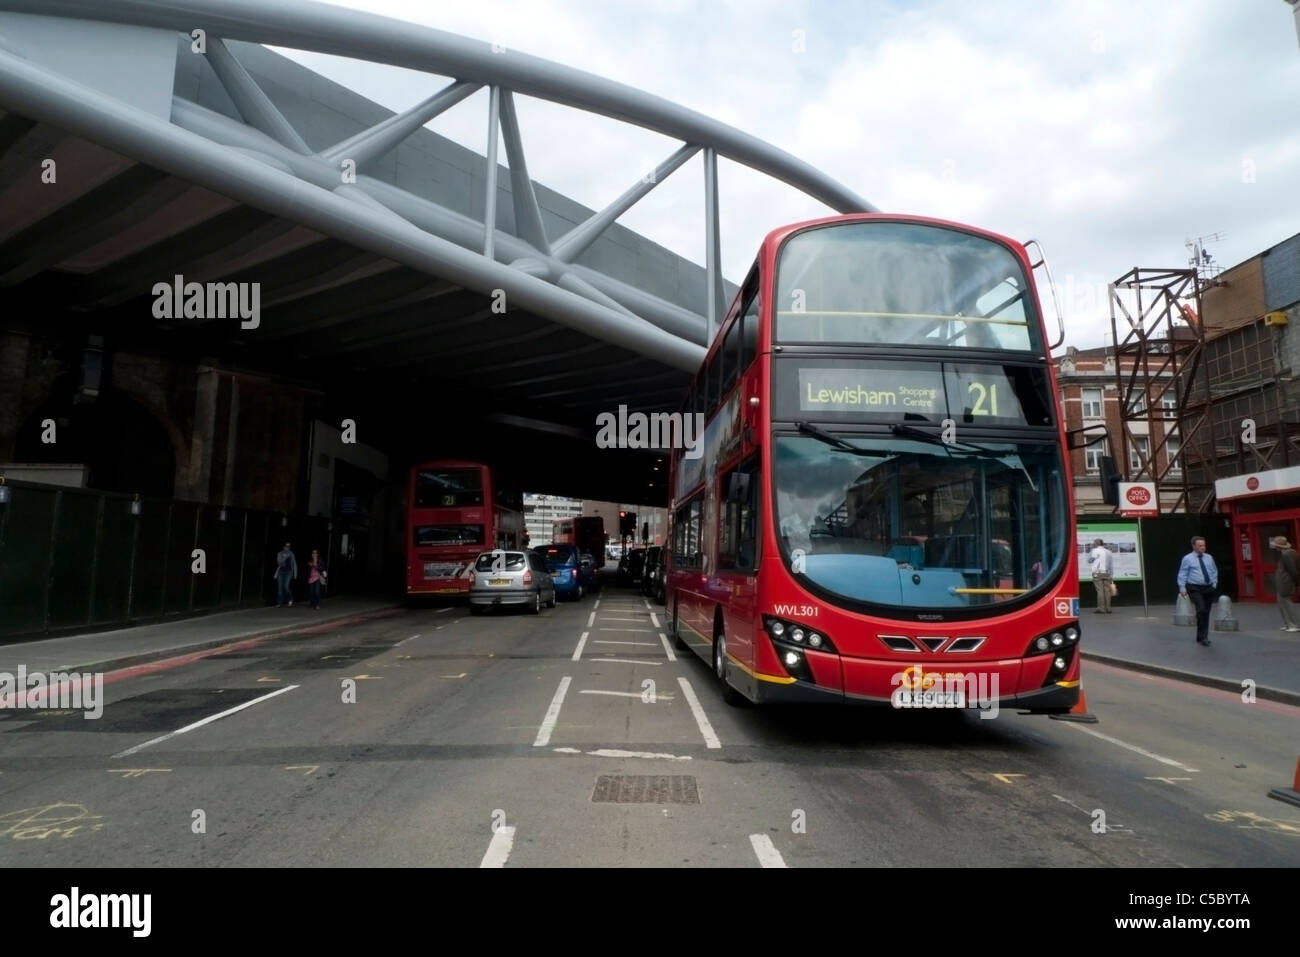 A red double-decker 21 bus destined for Lewisham passing under Network Rail new railway Viaduct Bridge at London Stock Photo